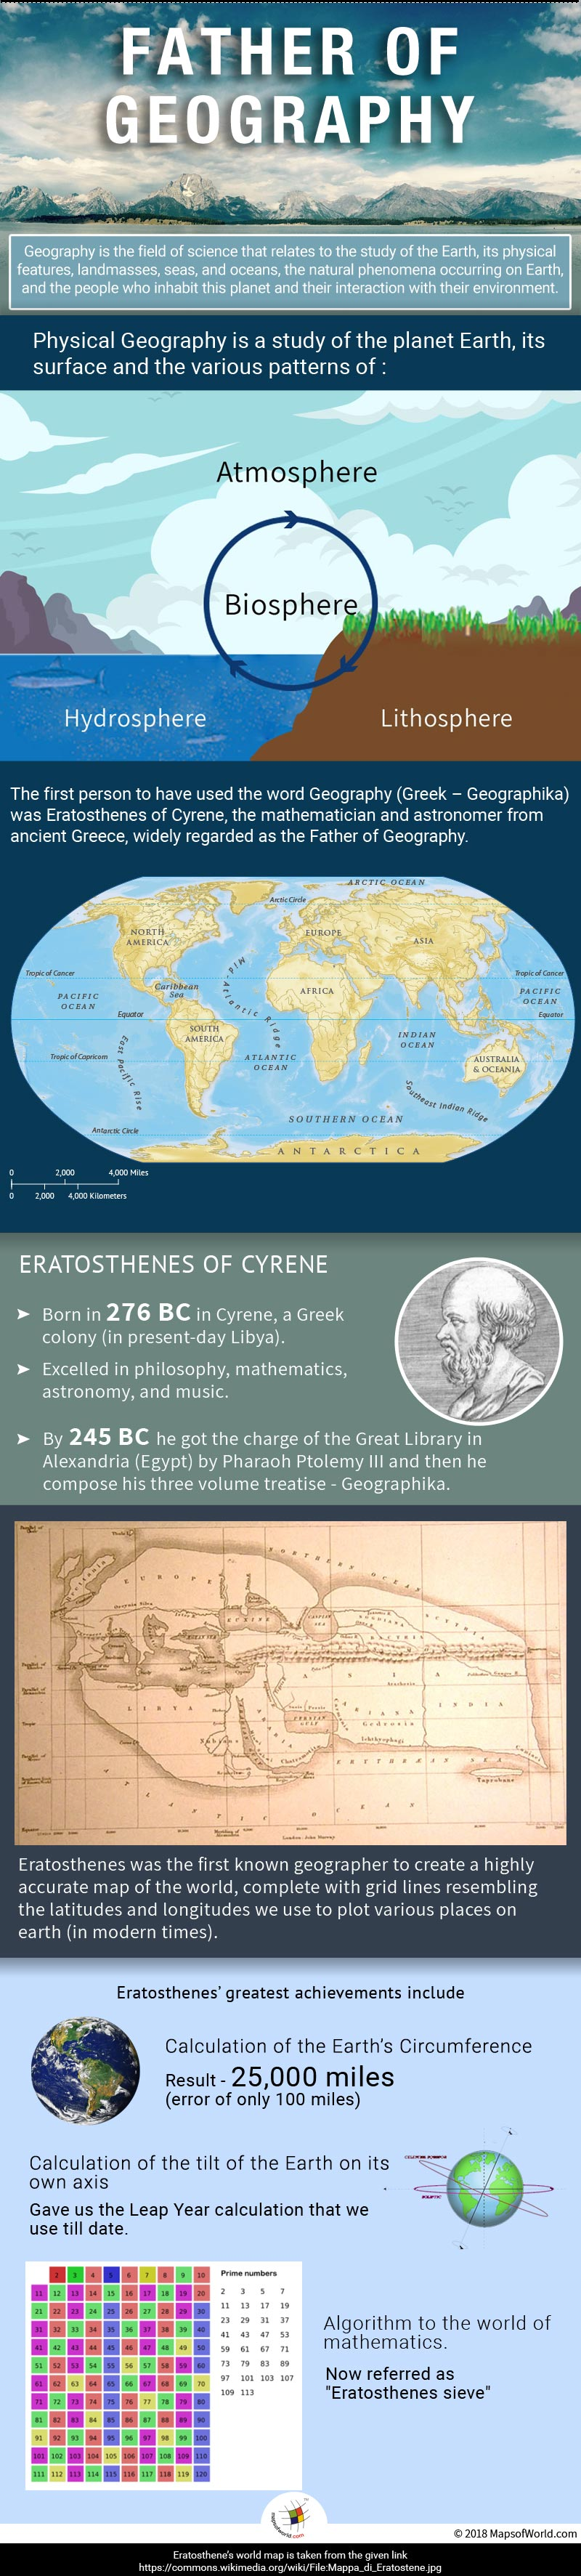 Infographic detailing the fathers of geography